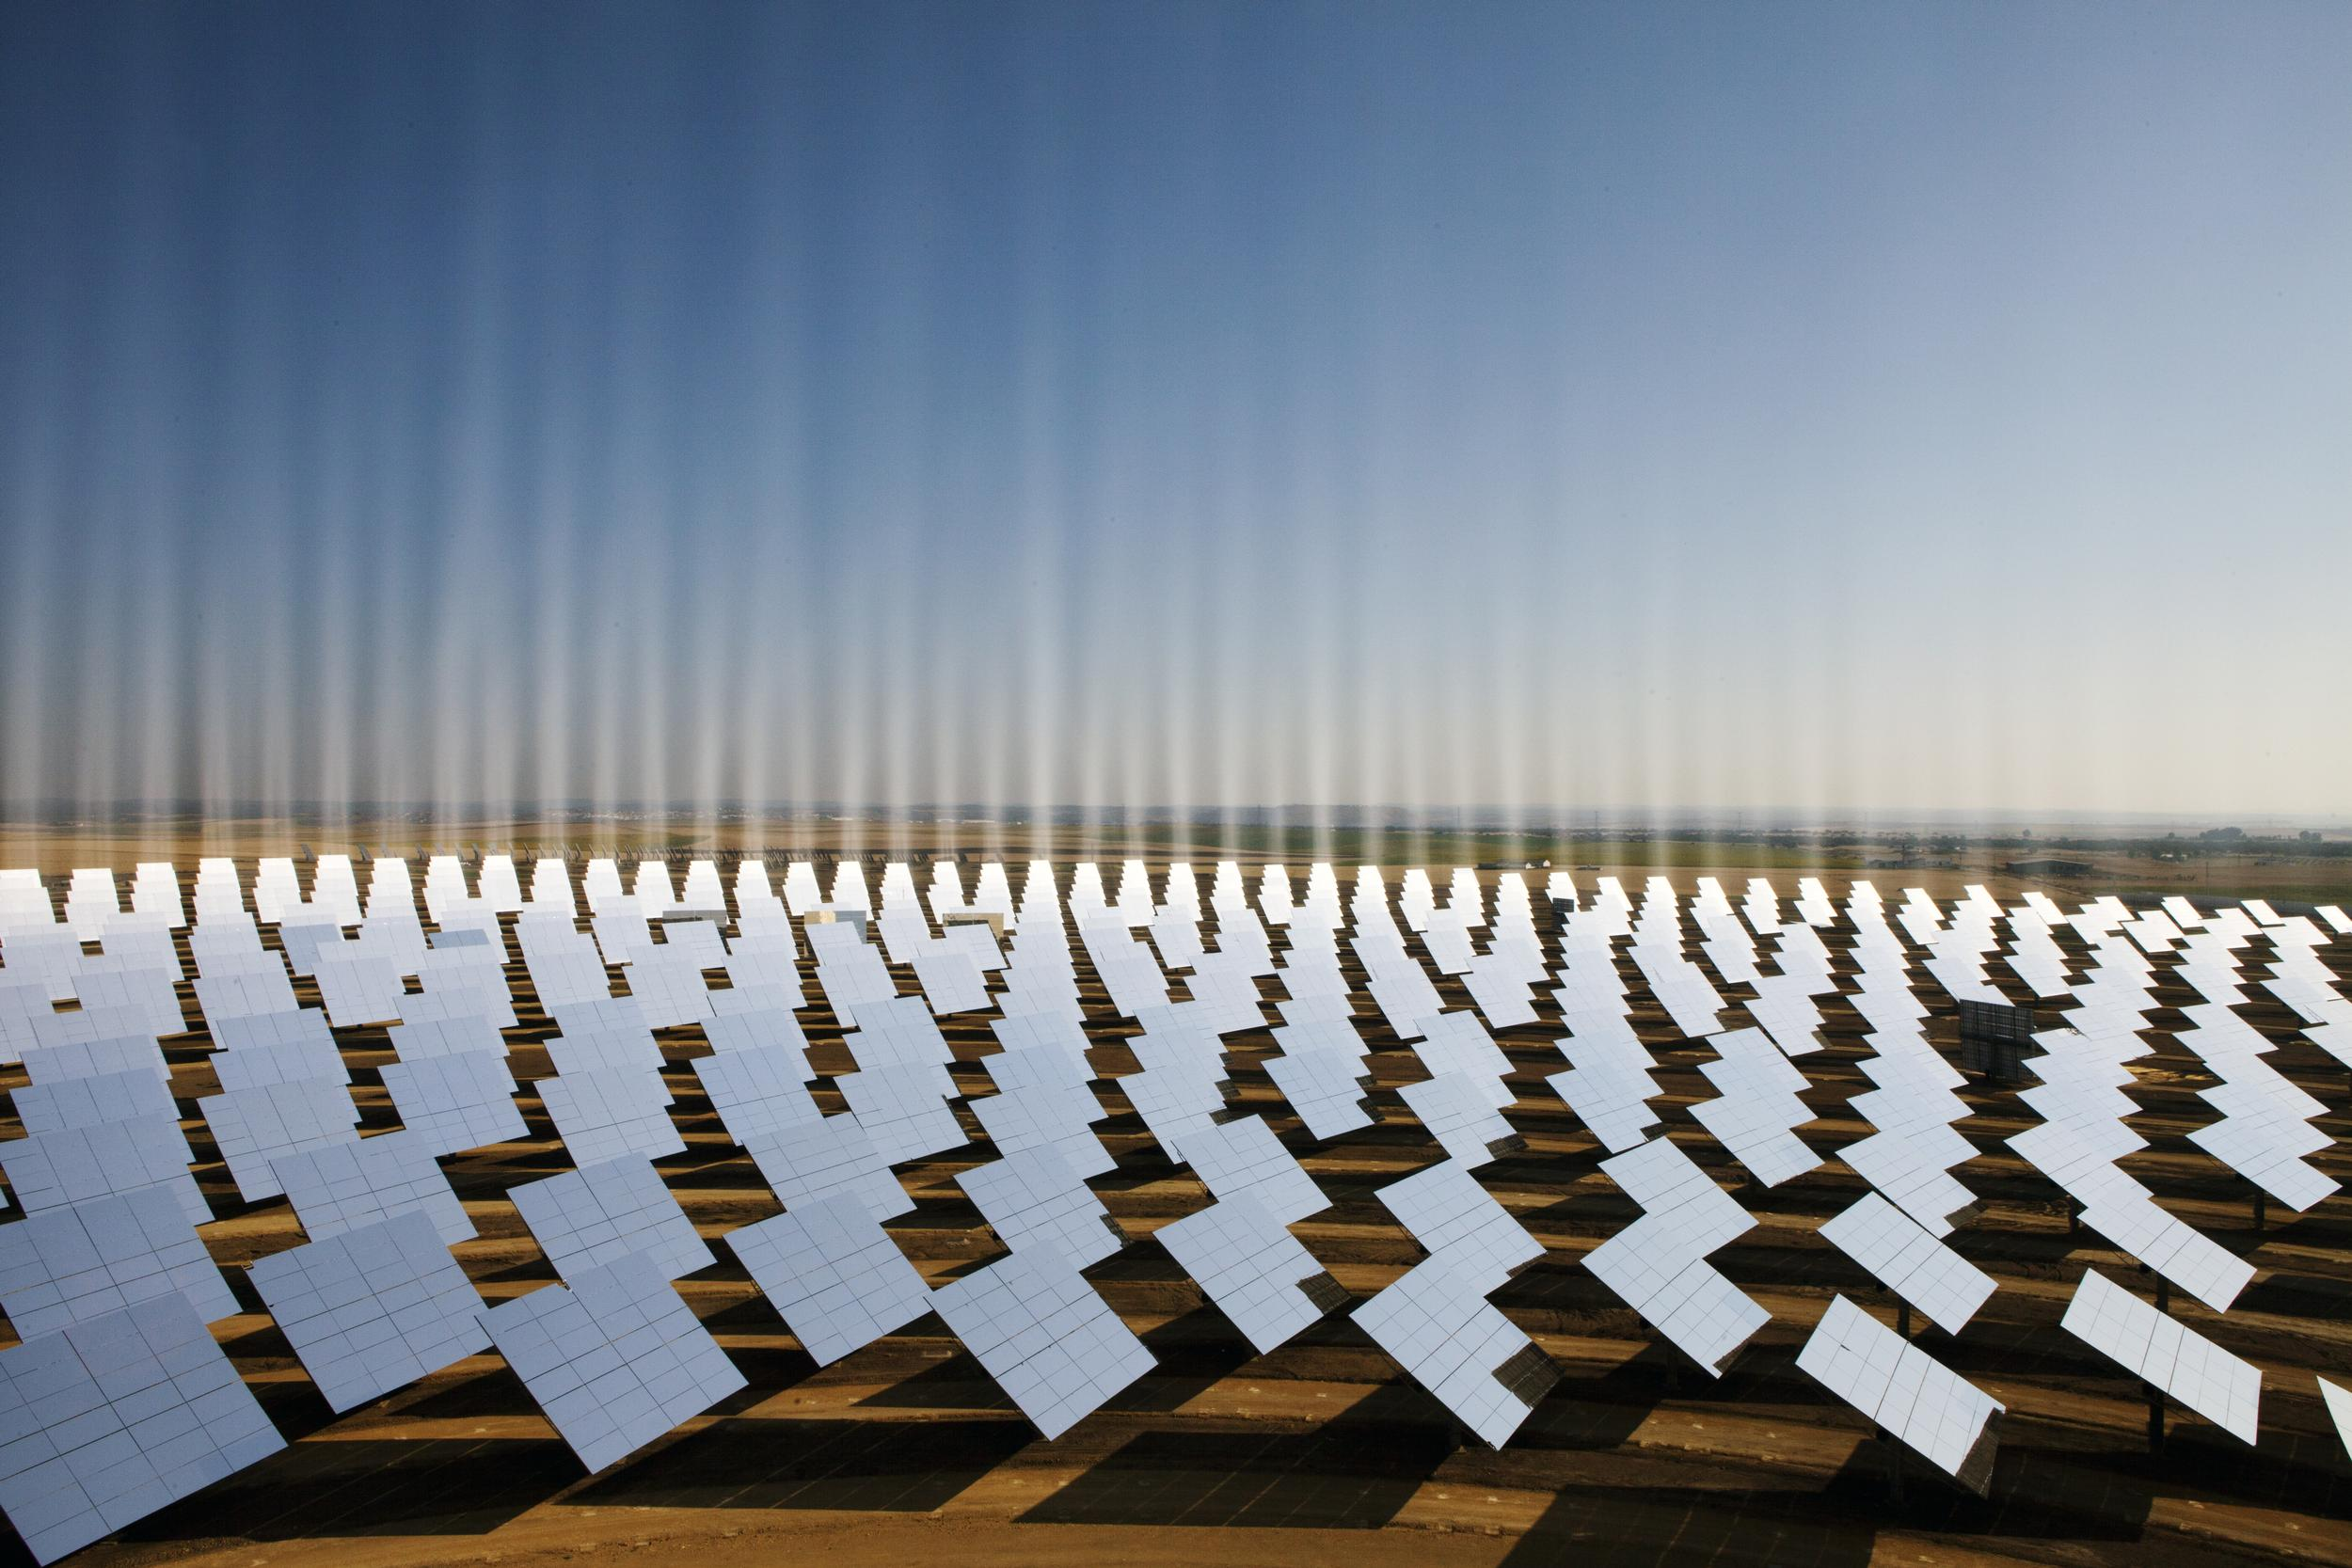 PS10 Solar Tower Plant in Spain. © Markel Redondo / Greenpeace